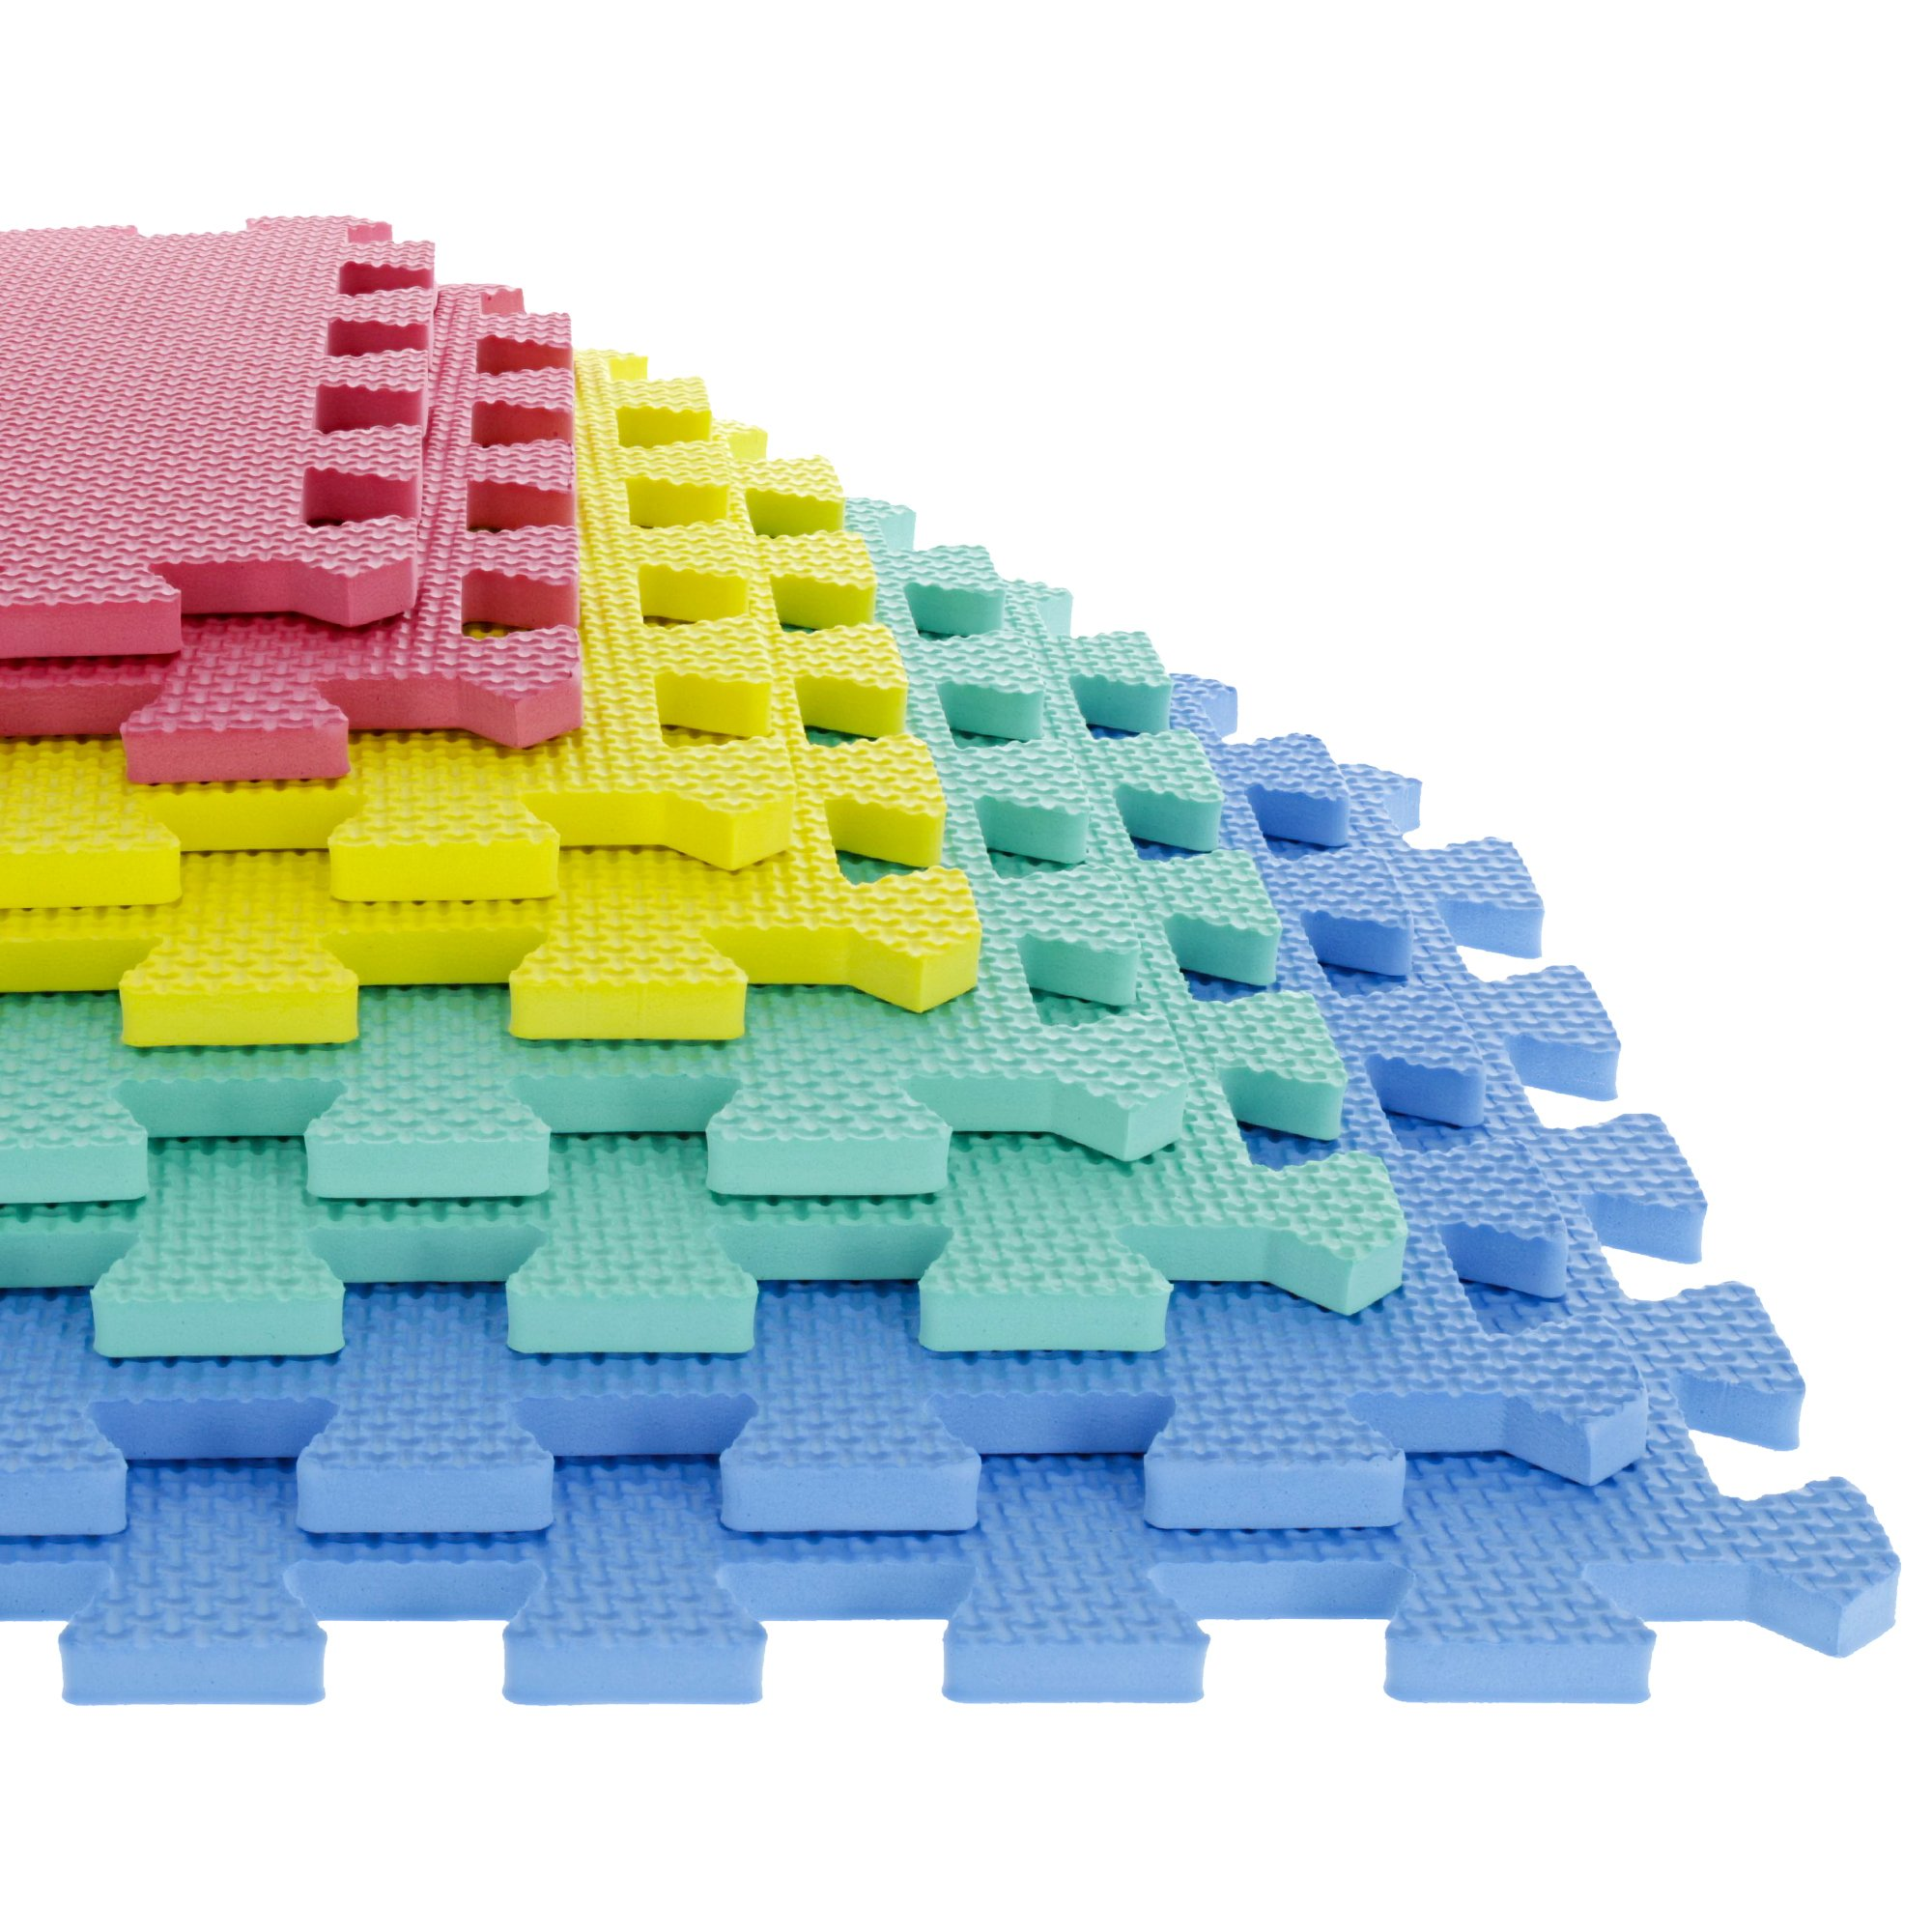 Galleon Foam Mat Floor Tiles Interlocking Eva Foam